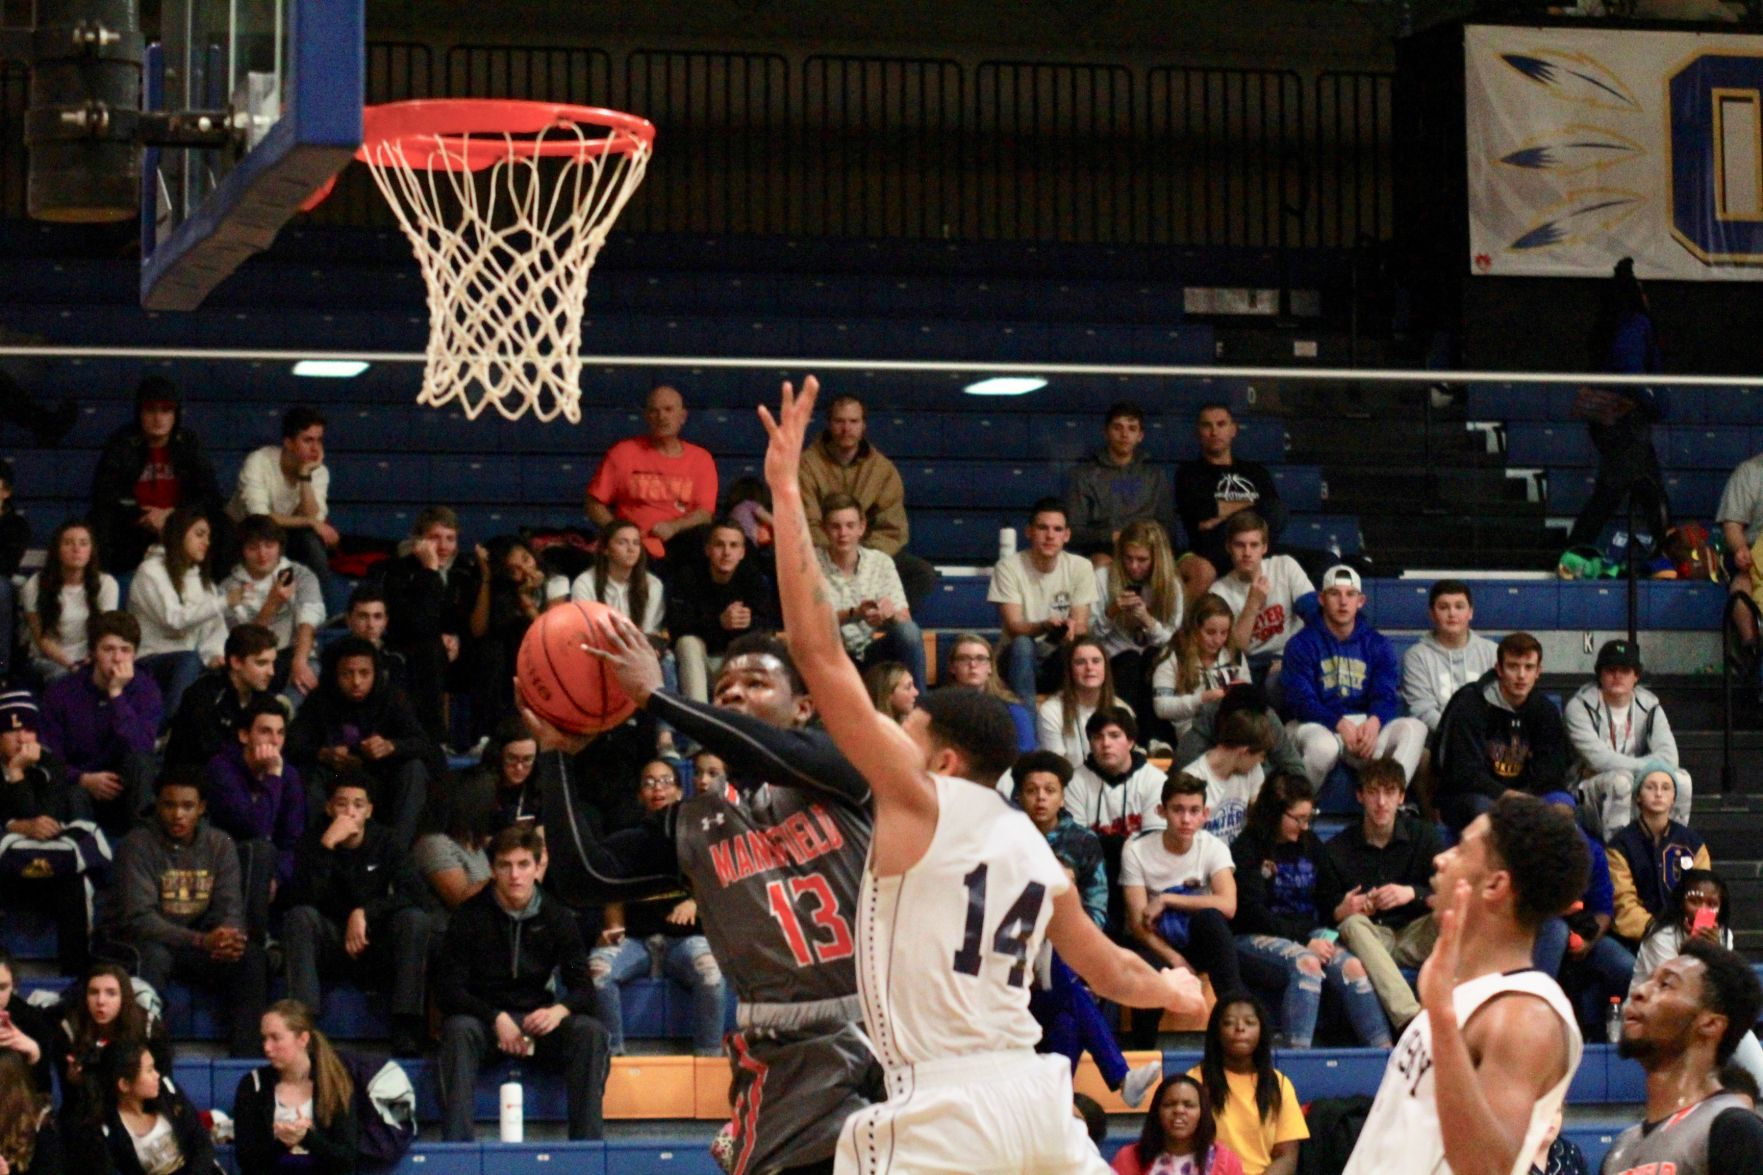 Tygers fall, but OCC tops NOL to win Richland Source Challenge